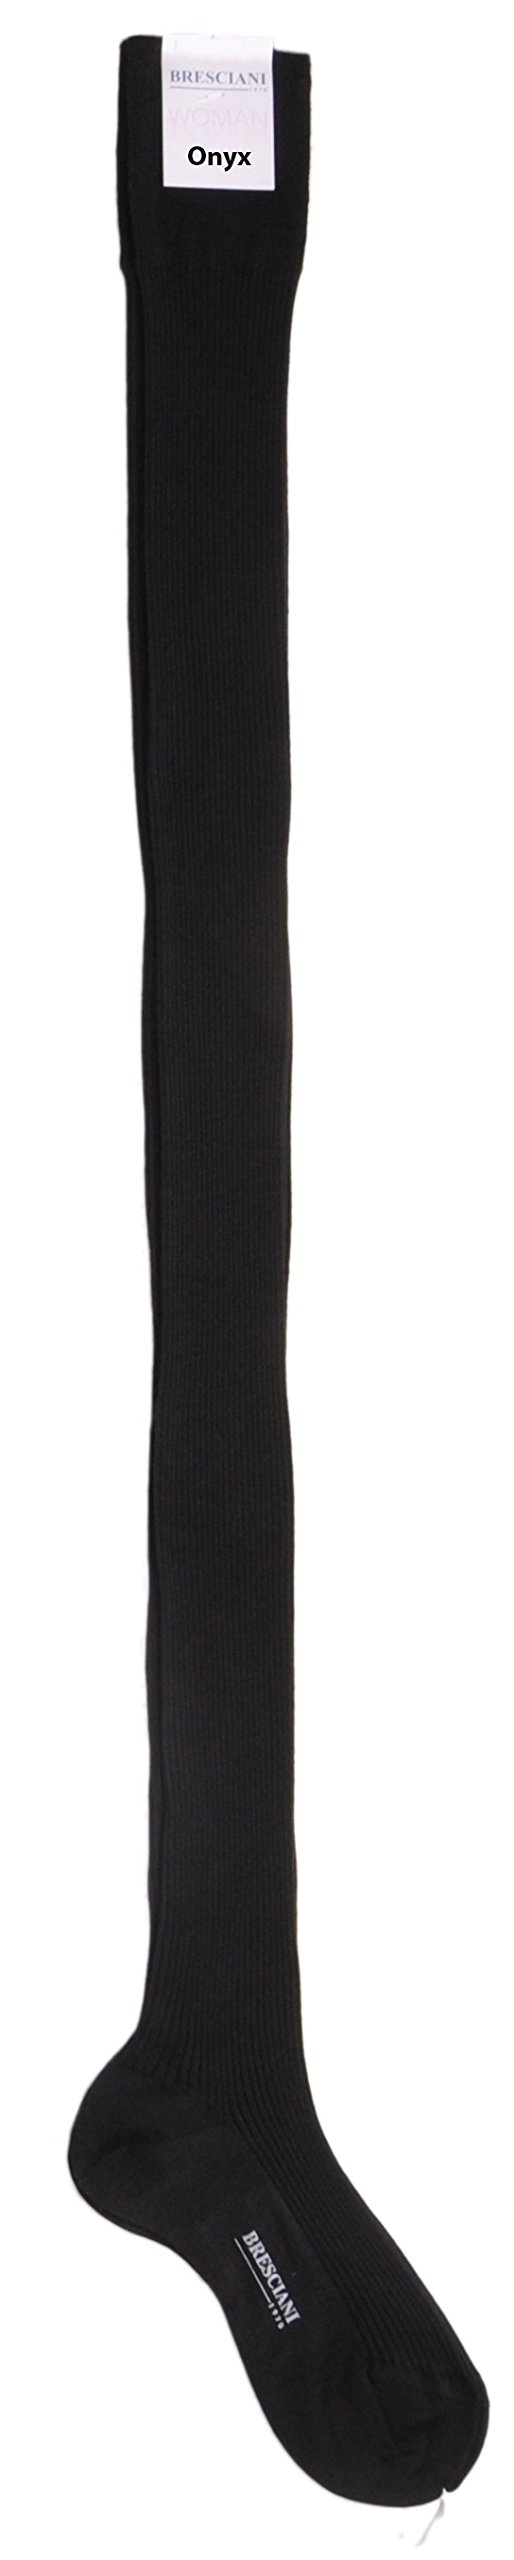 Ultimate Socks - Womens Cashmere and Silk Thigh-Highs One Pair Medium/Onyx